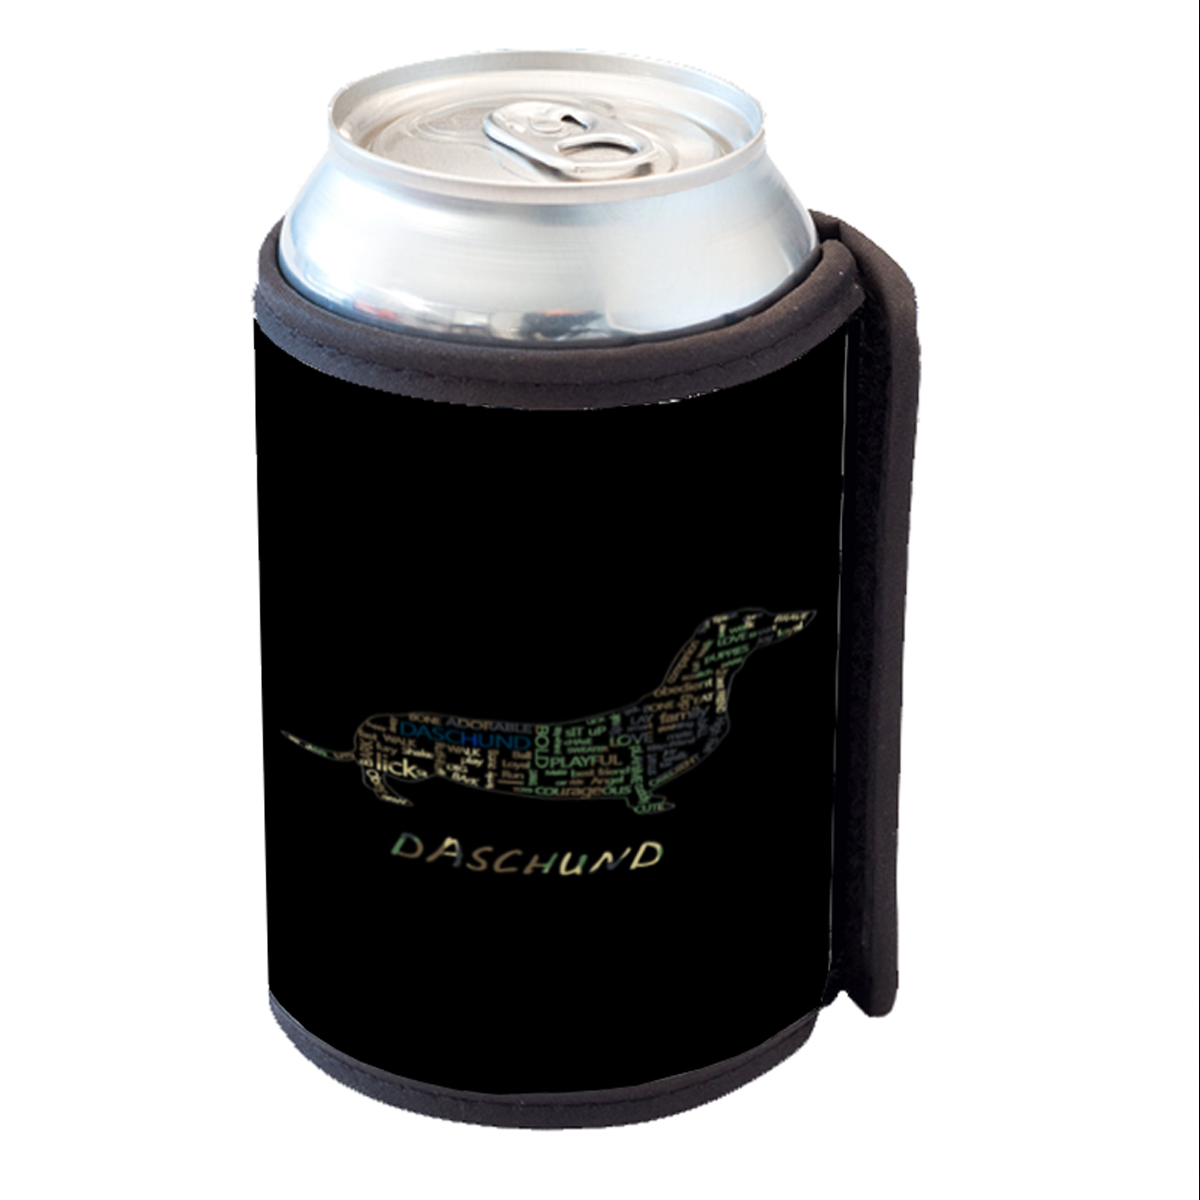 KuzmarK Insulated Drink Can Cooler Hugger - Daschund Camouflage